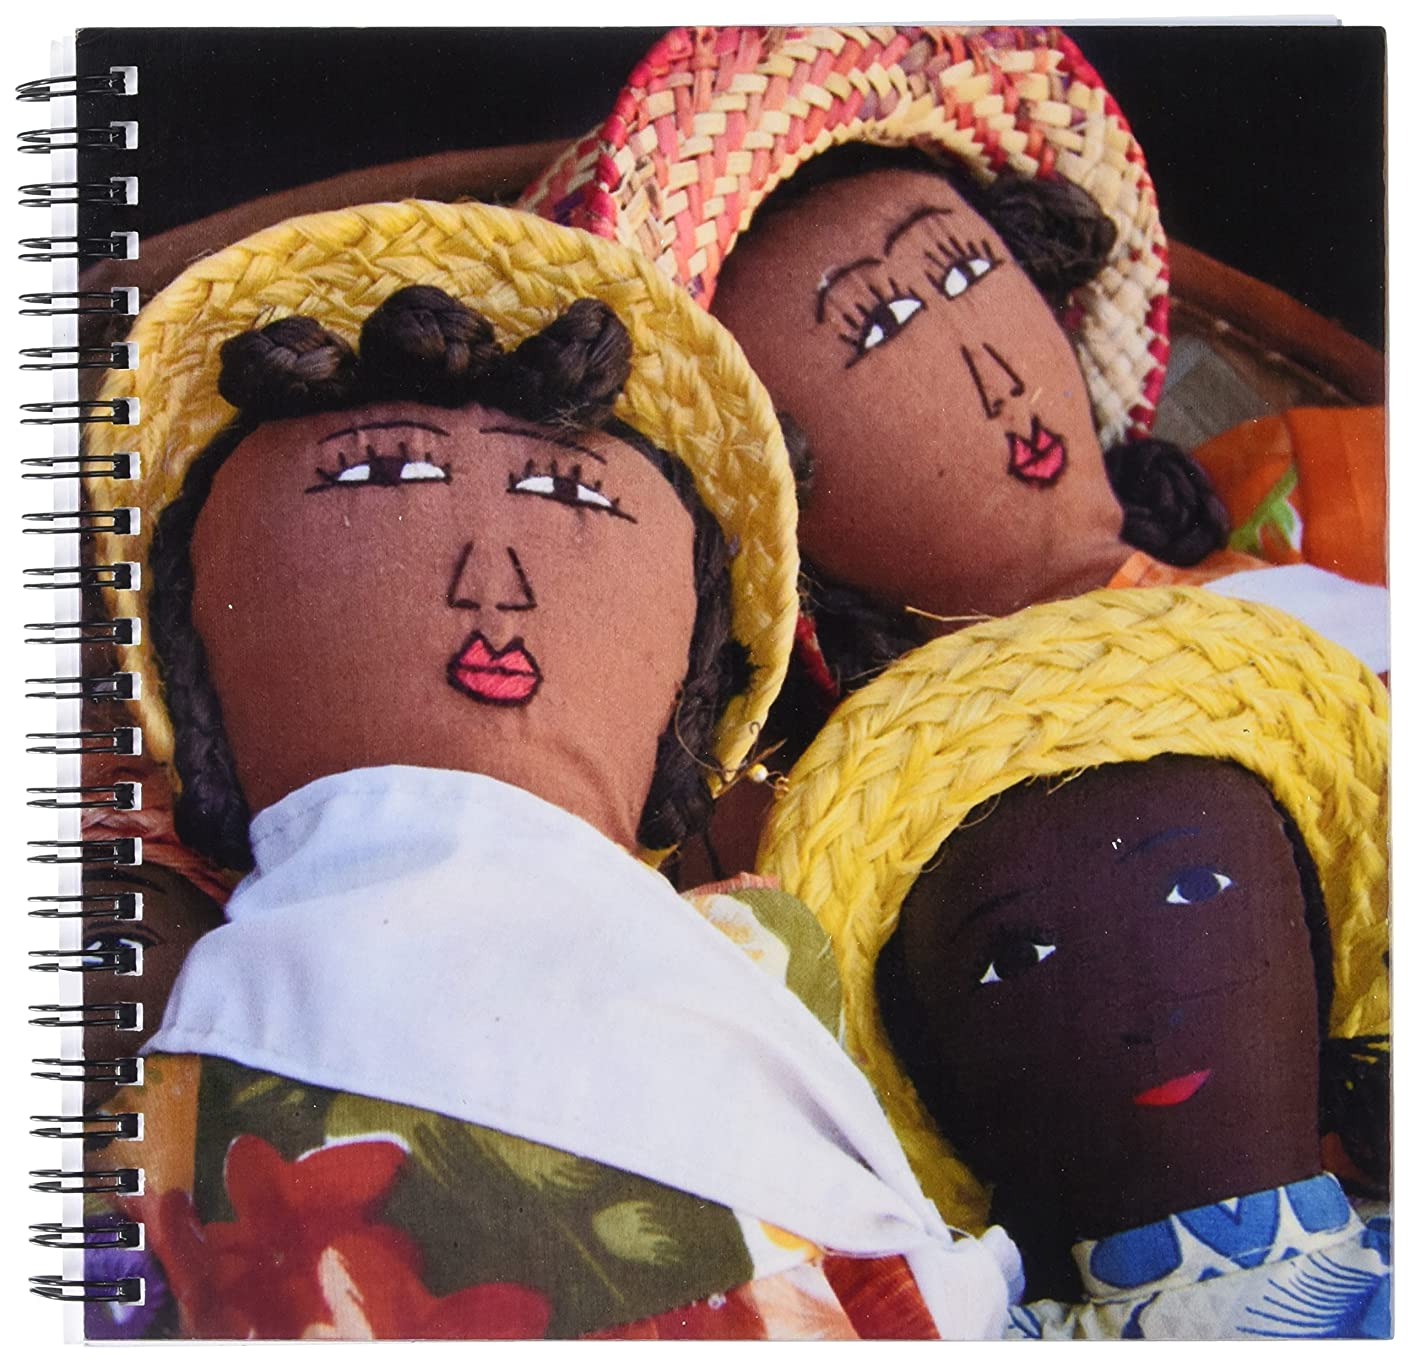 3dRose db_132045_1 Reunion Island. St Pierre, Market Dolls-Af34 Cmi0006-Cindy Miller Hopkins-Drawing Book, 8 by 8-Inch